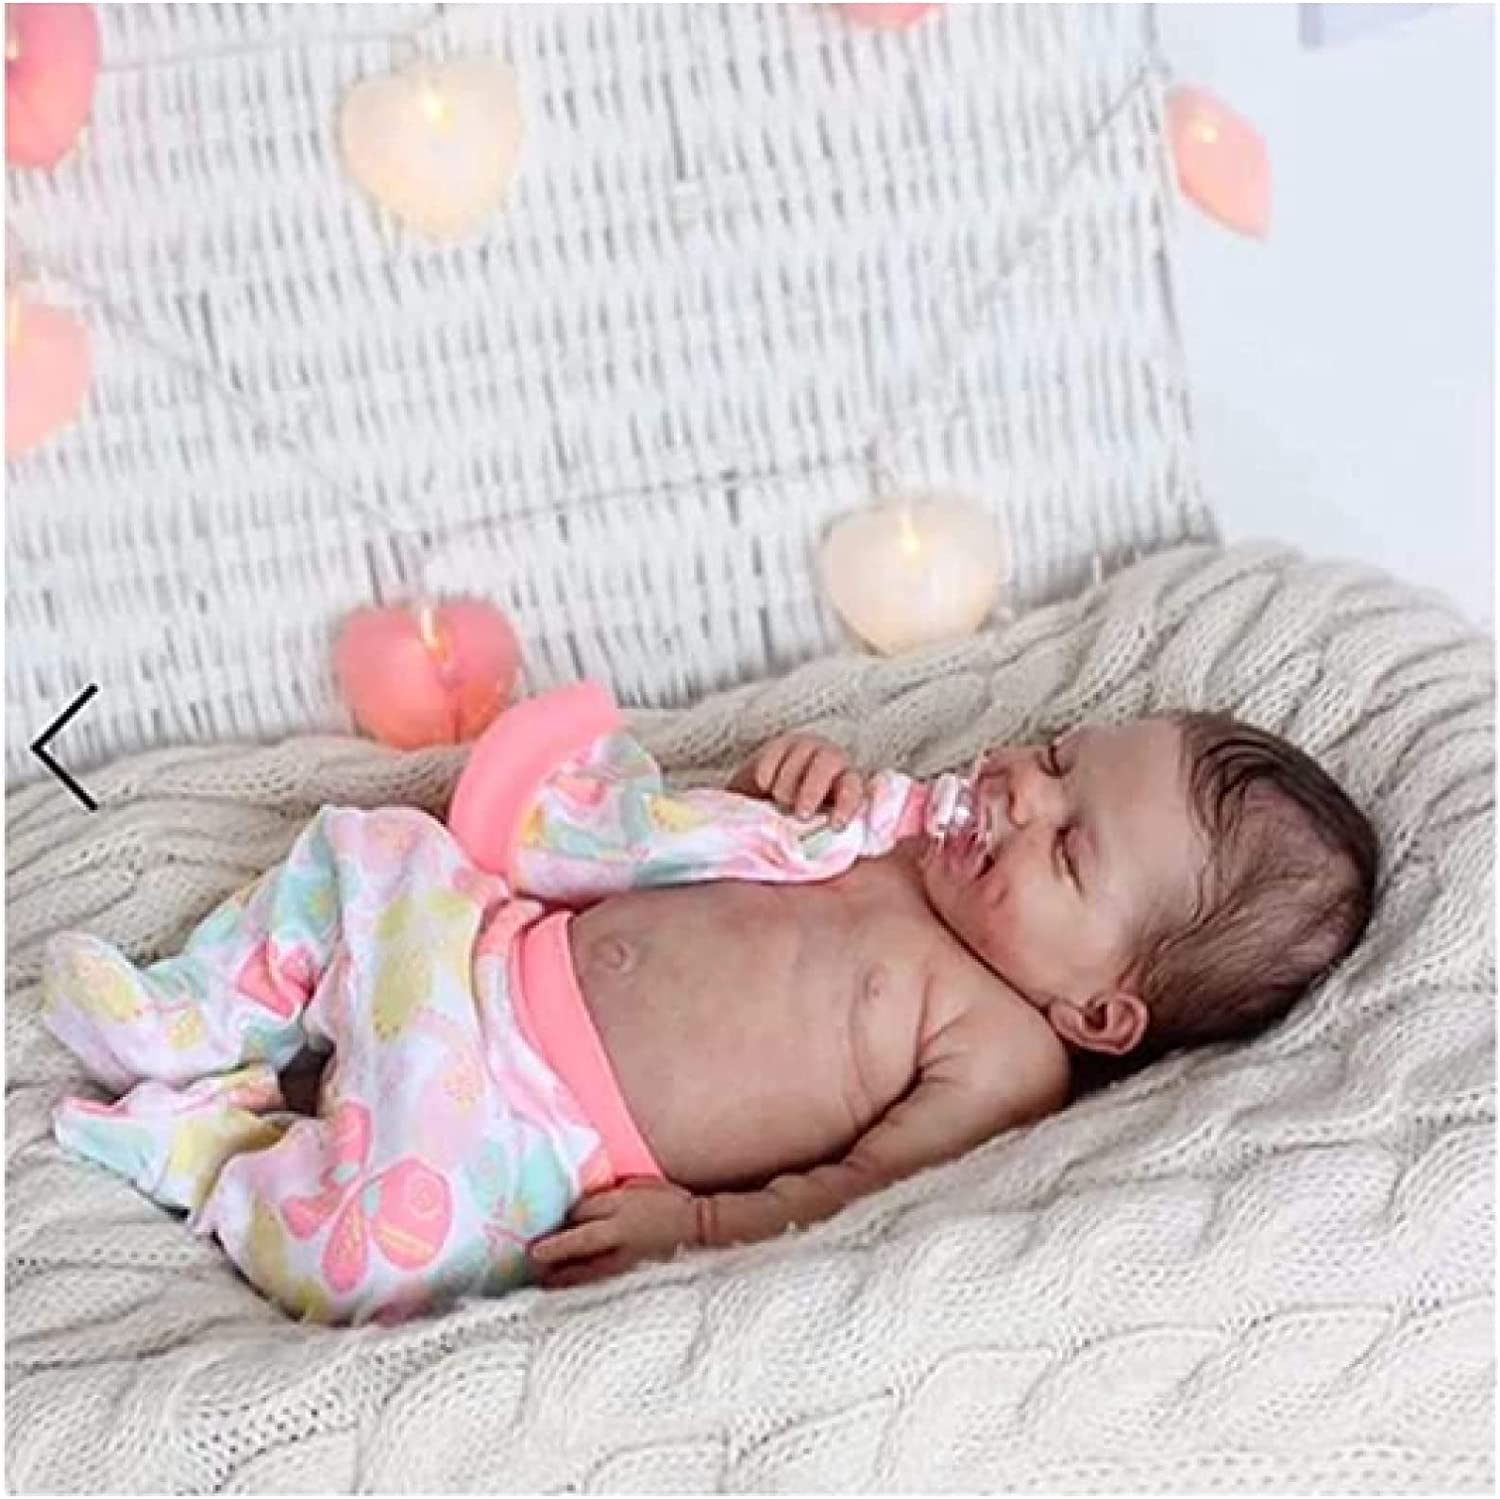 Qiang Real Silicone Baby Sil Soft Fort Worth Max 63% OFF Mall 46cm Doll